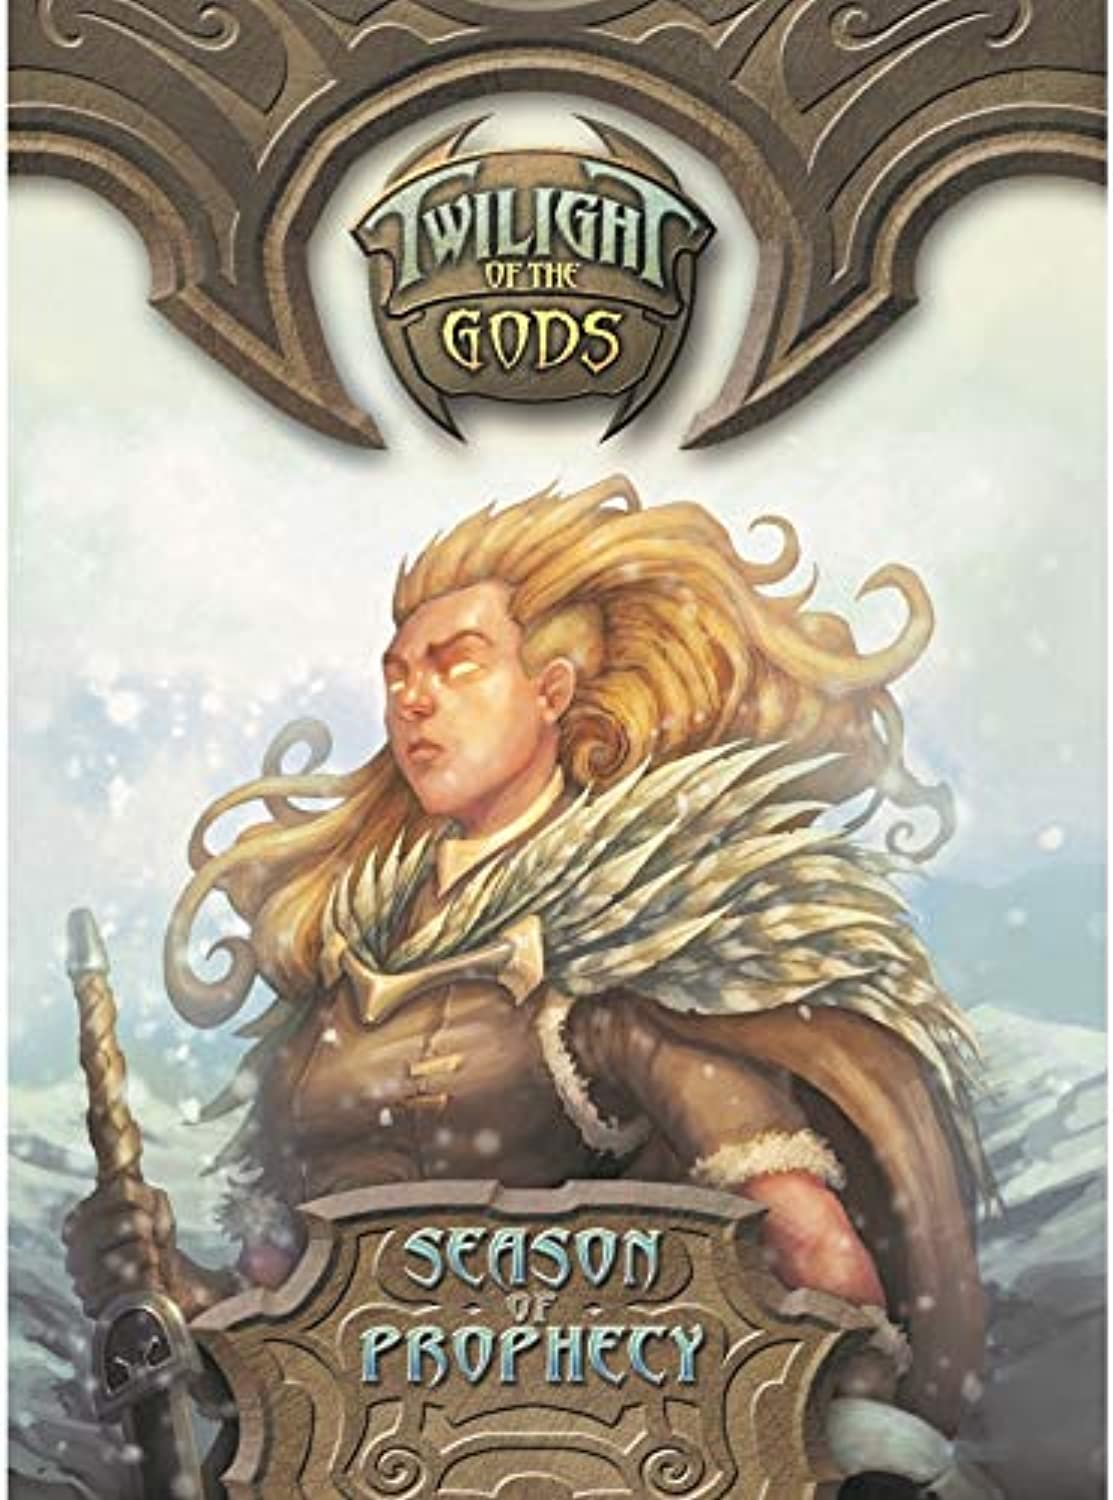 Twilight Of The Gods  Season Of Prophecy Expansion